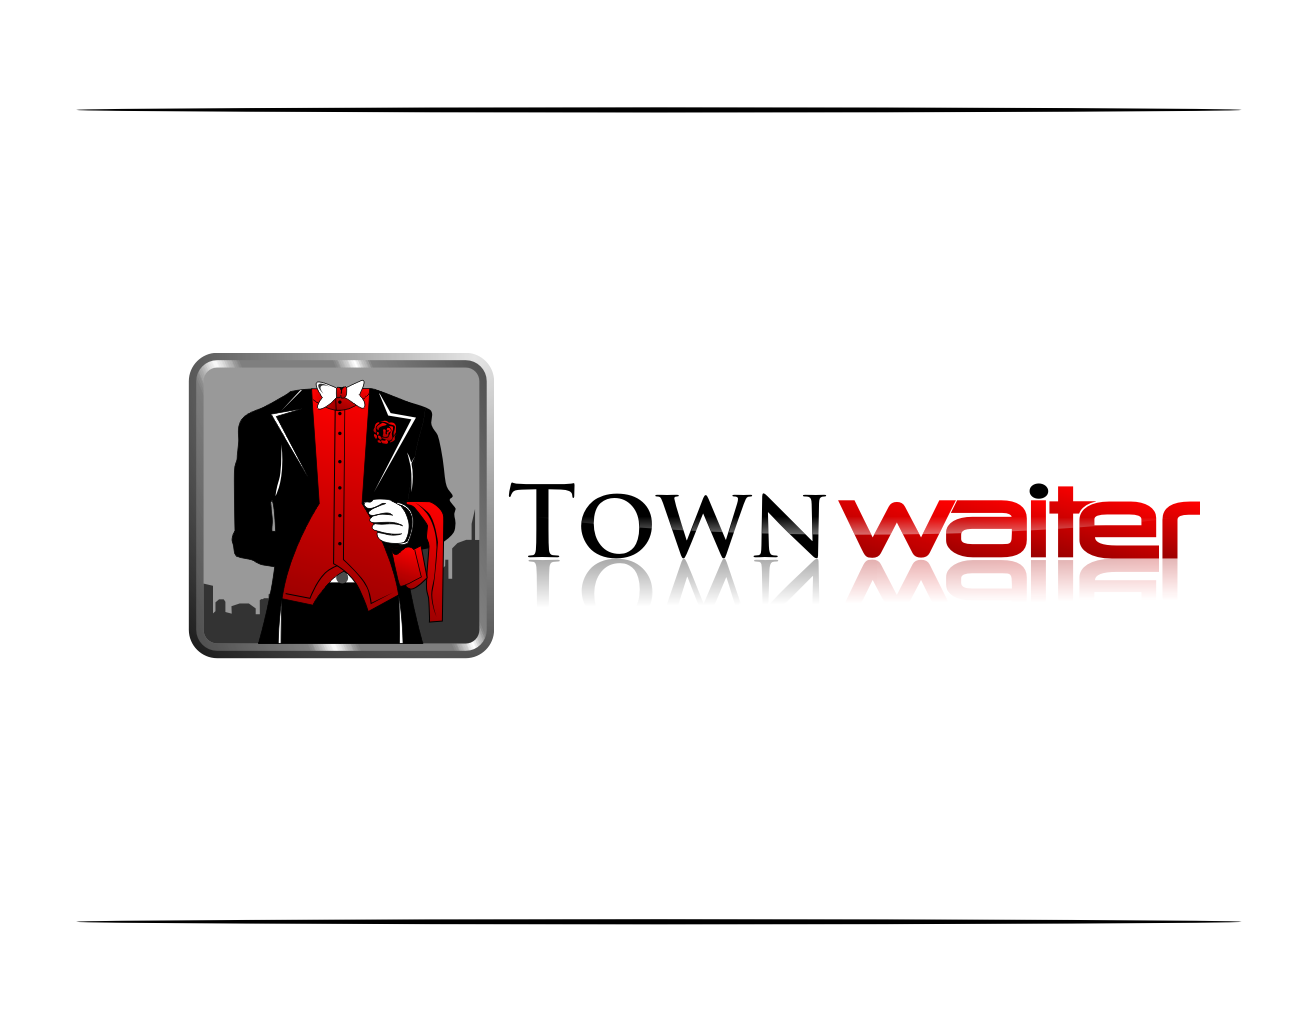 New logo wanted for Townwaiter